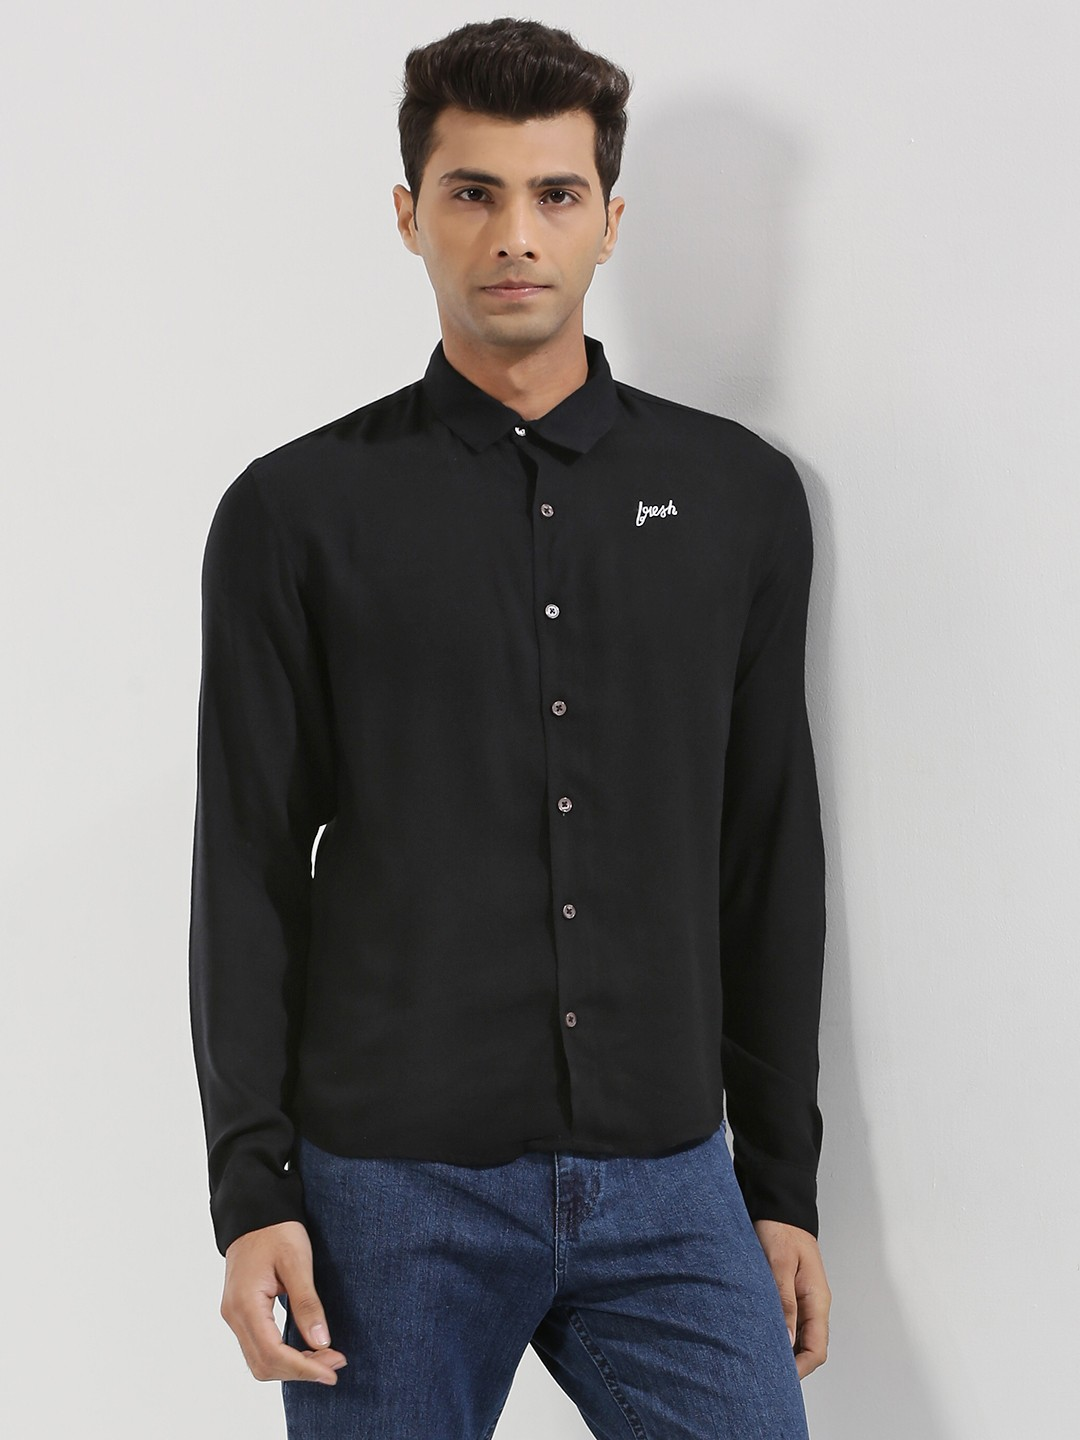 KOOVS Black Text Embroidered Shirt In The Style Of Harry Styles 1